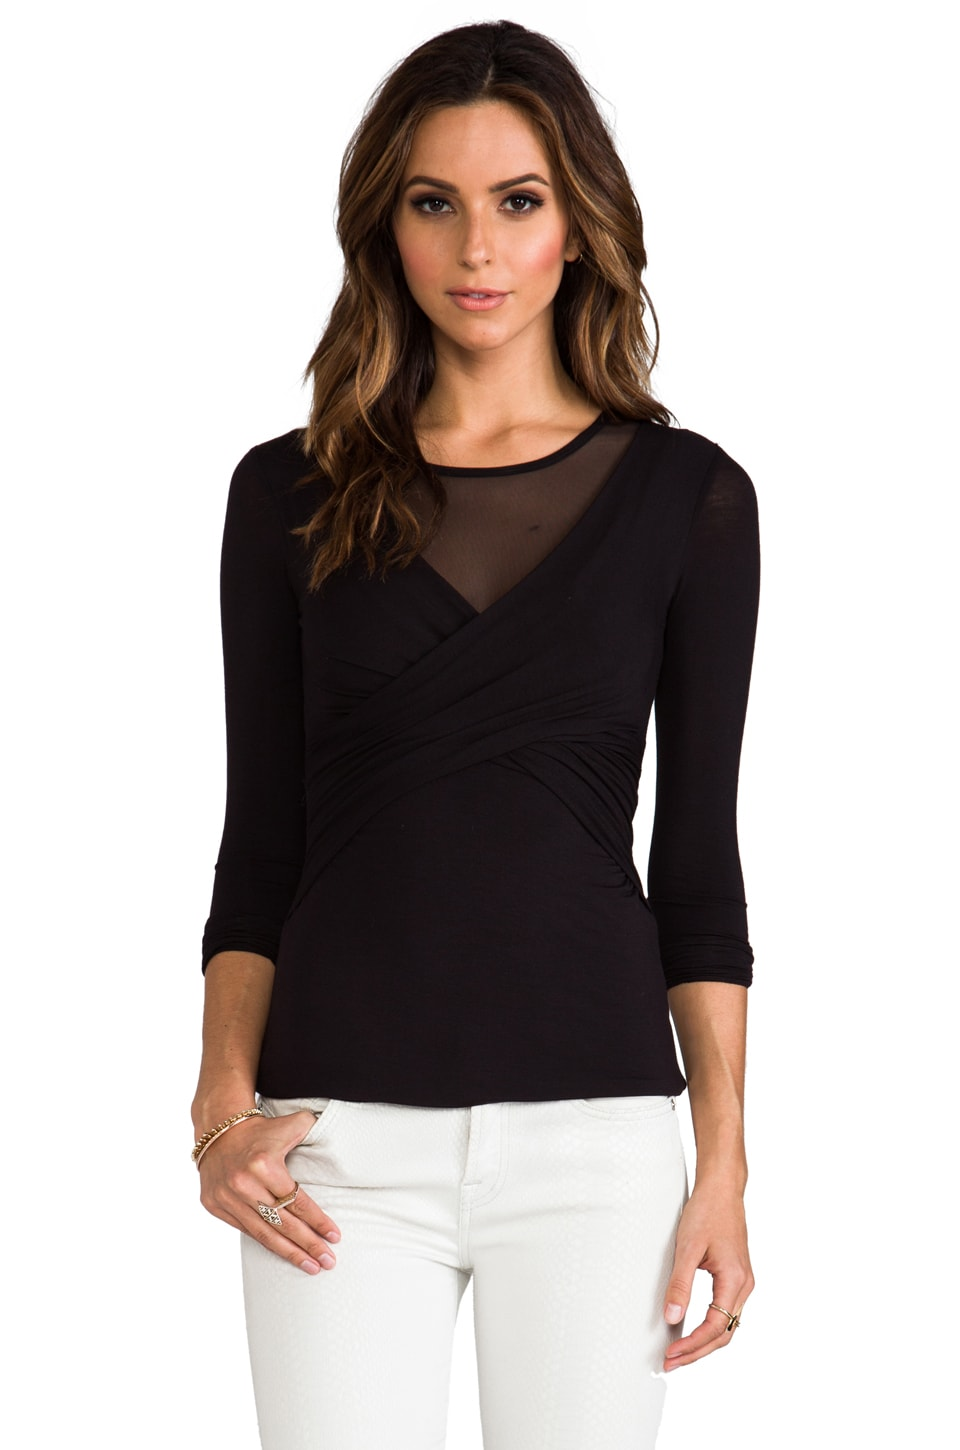 Bailey 44 Celestial Body Top in Black